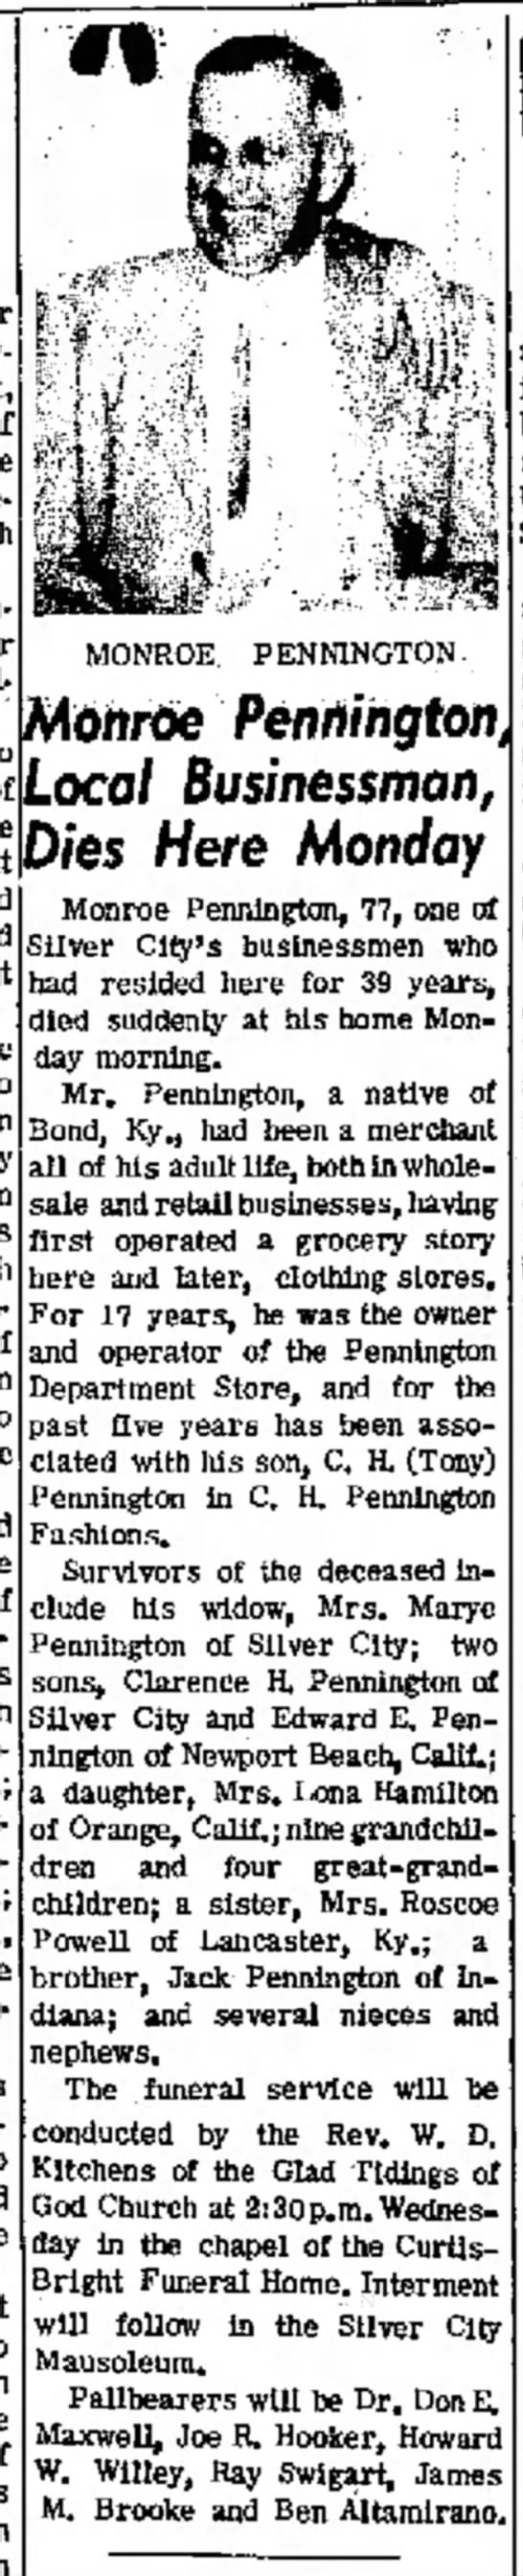 Monroe Pennington, obit in Silver City Daily Press, 1 June 1971 -